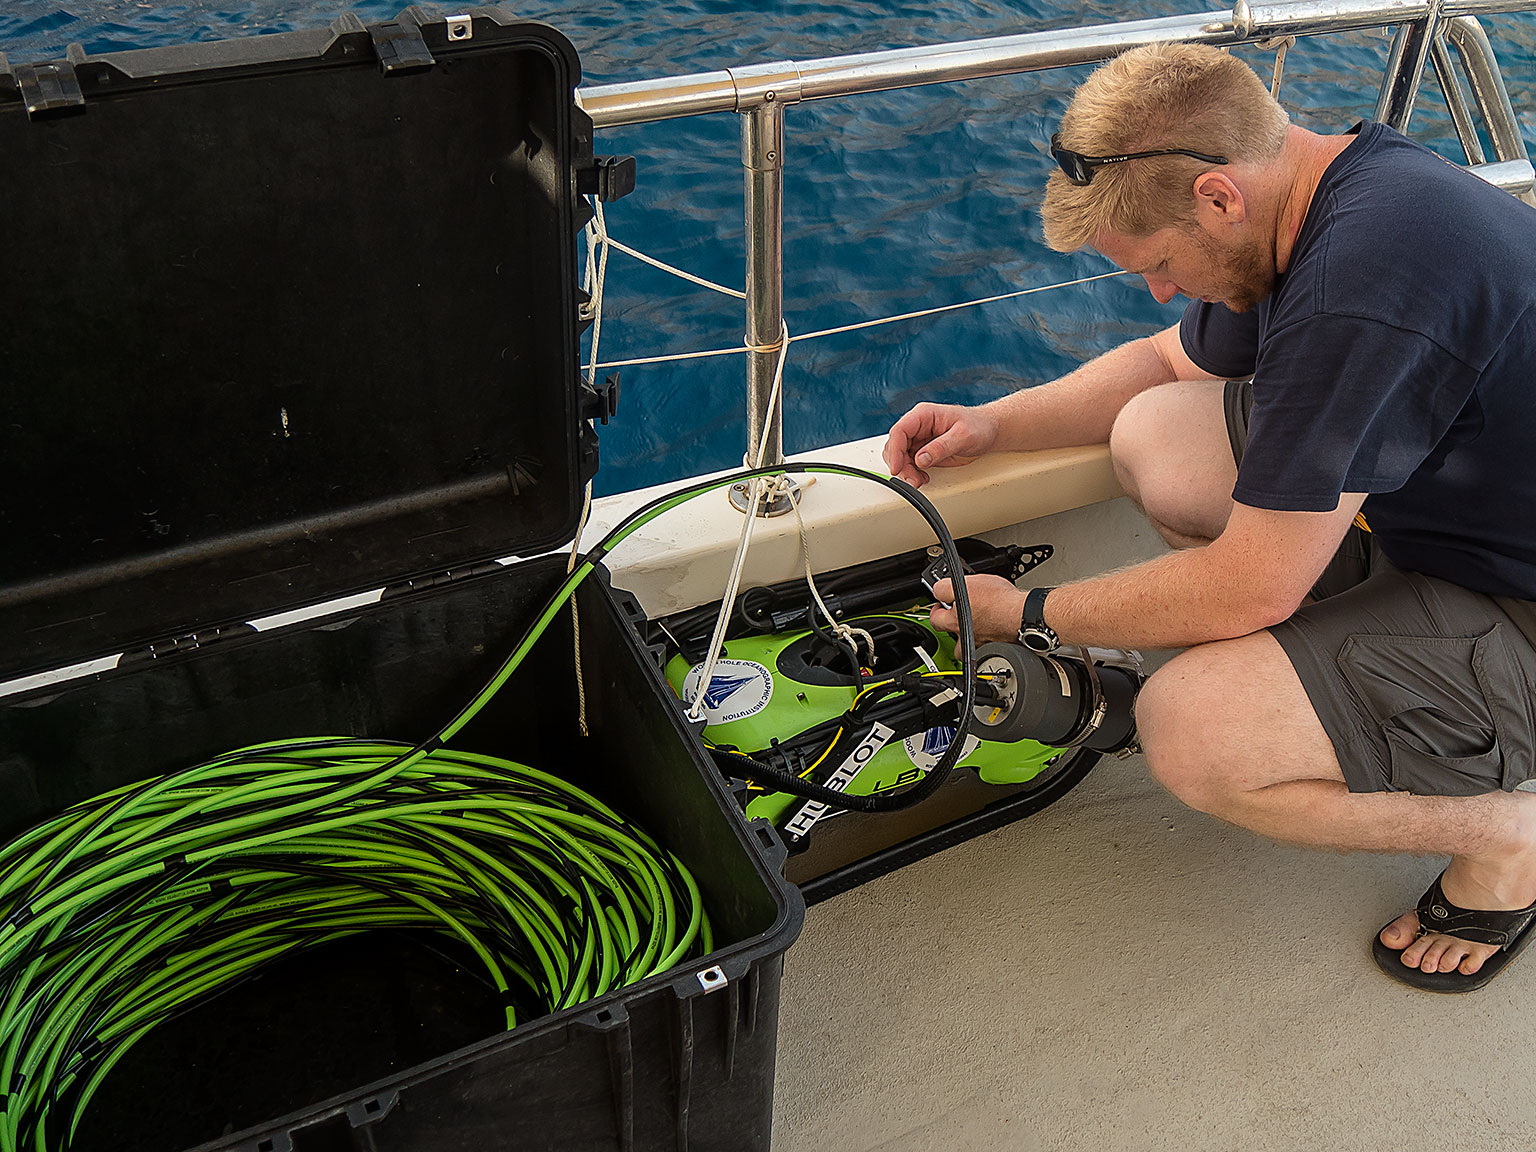 Dr. Carl Kaiser preparing the ROV, which provides a live video feed to the surface.